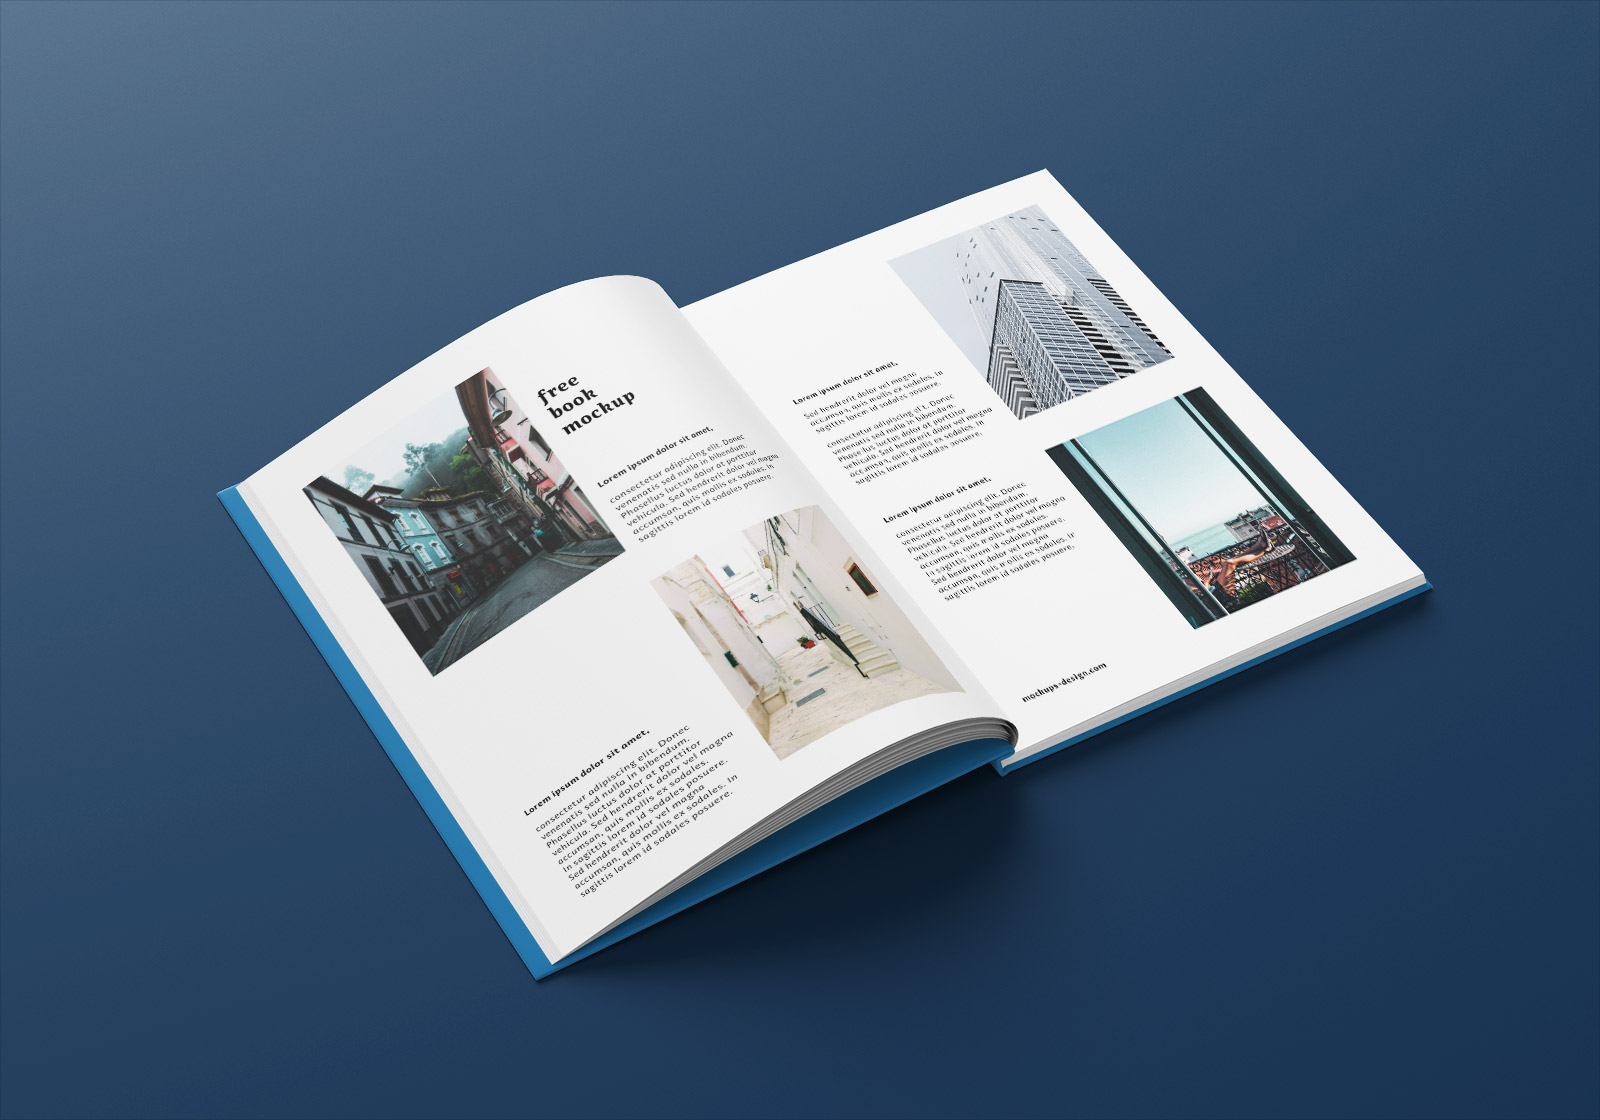 Free A4 Hardcover Magazine Book Mockup PSD Set (4)